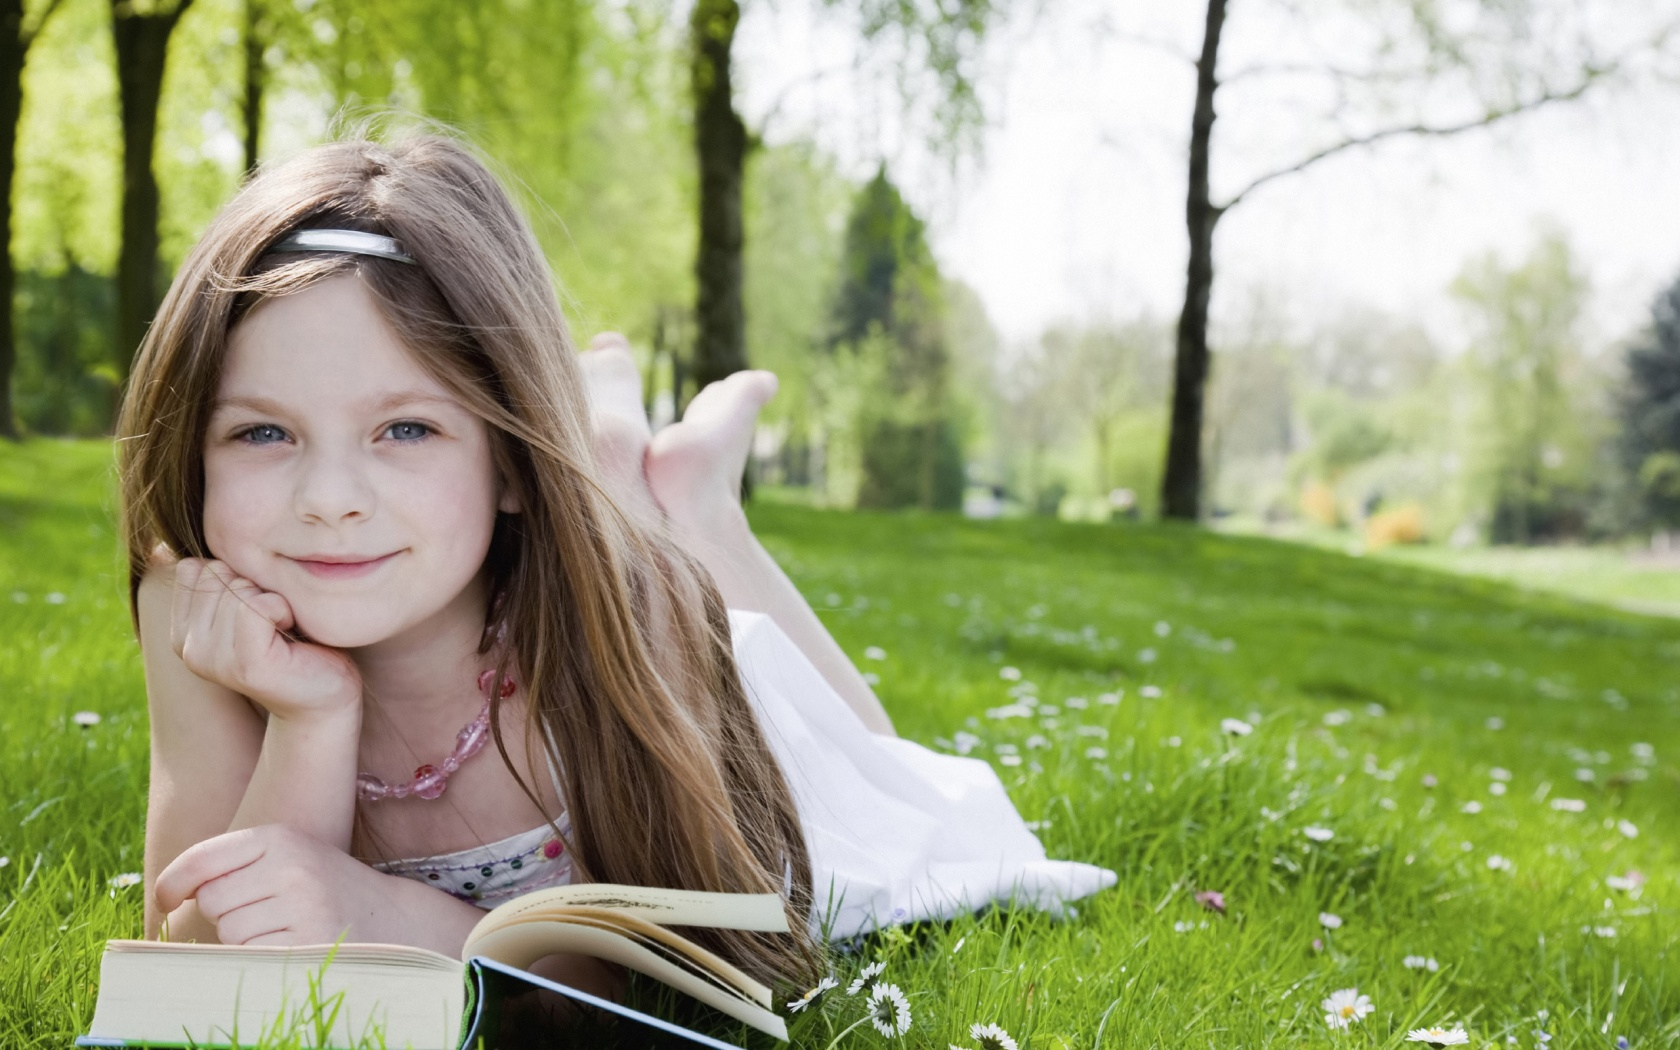 Little girl reading a book 1680 x 1050 download close